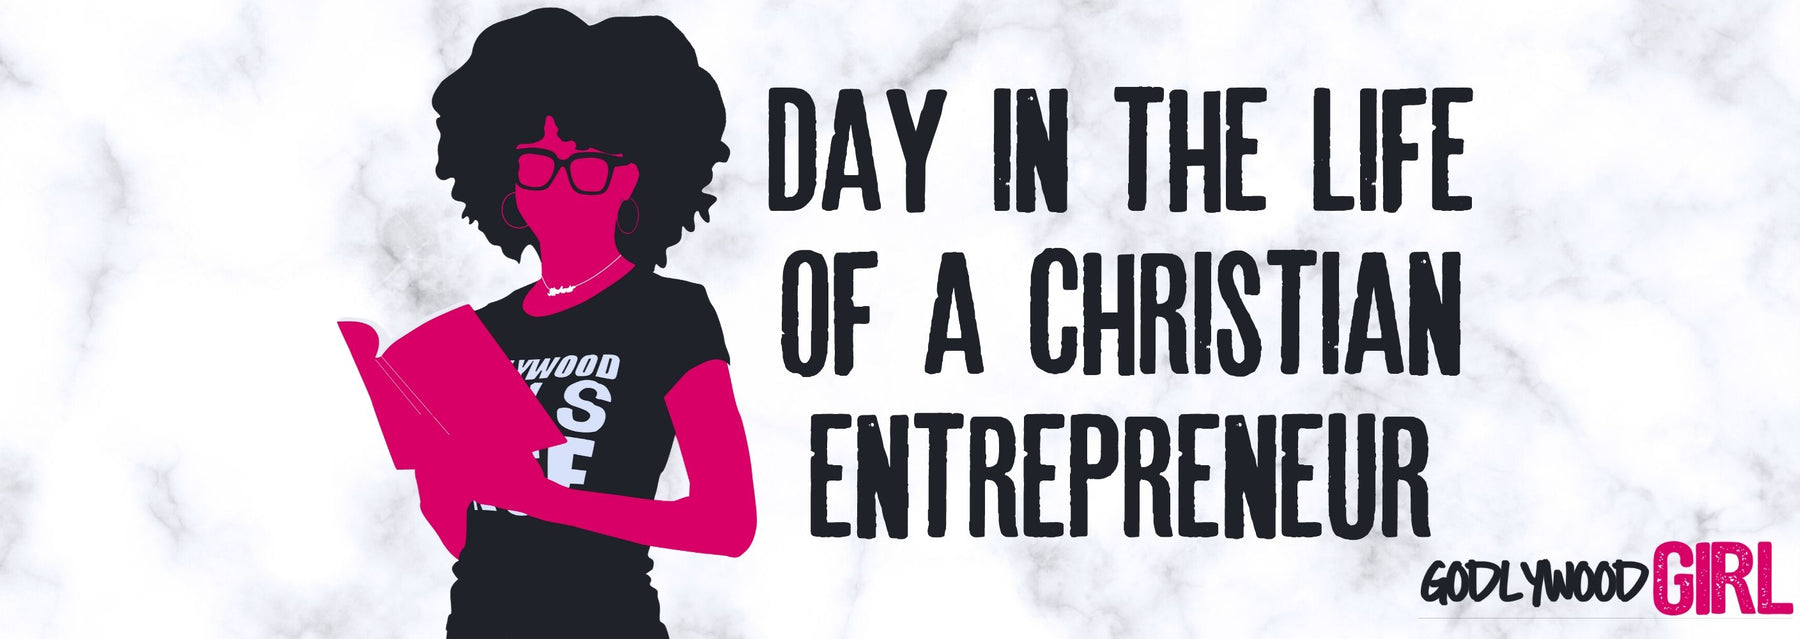 Day In The Life Of A Christian Entrepreneur Ep.25 | Day In The Life Of A Busy Entrepreneur (Actually 4 lol)